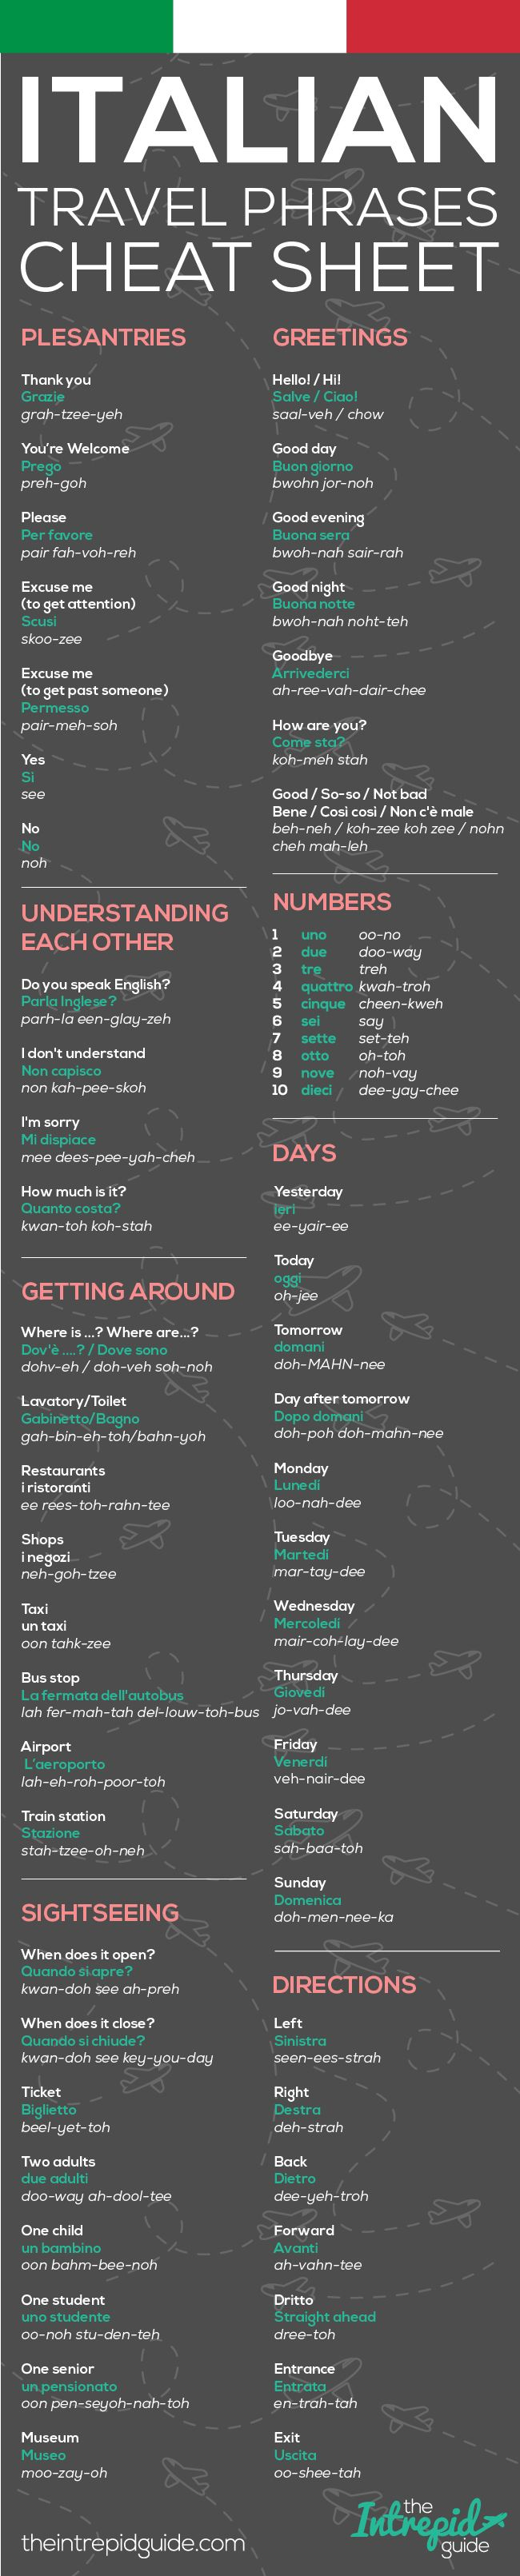 Italian Travel Phrases